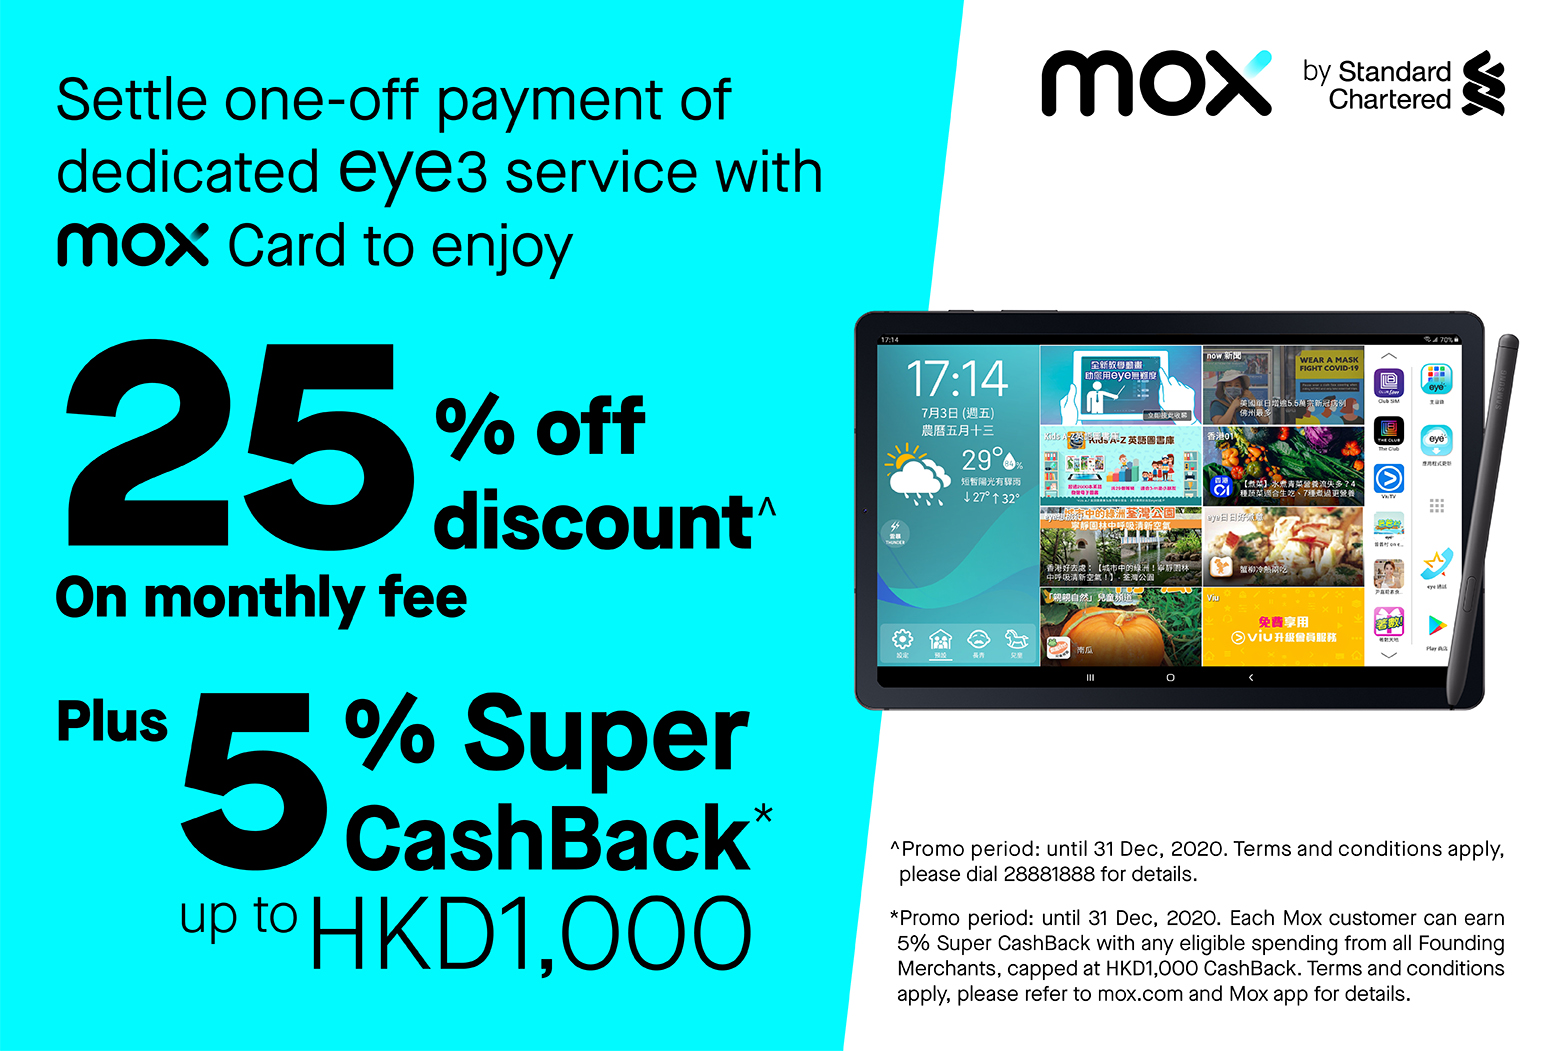 Get 25% off your monthly fee for designated eye3 Service plans when subscribing with your Mox Card